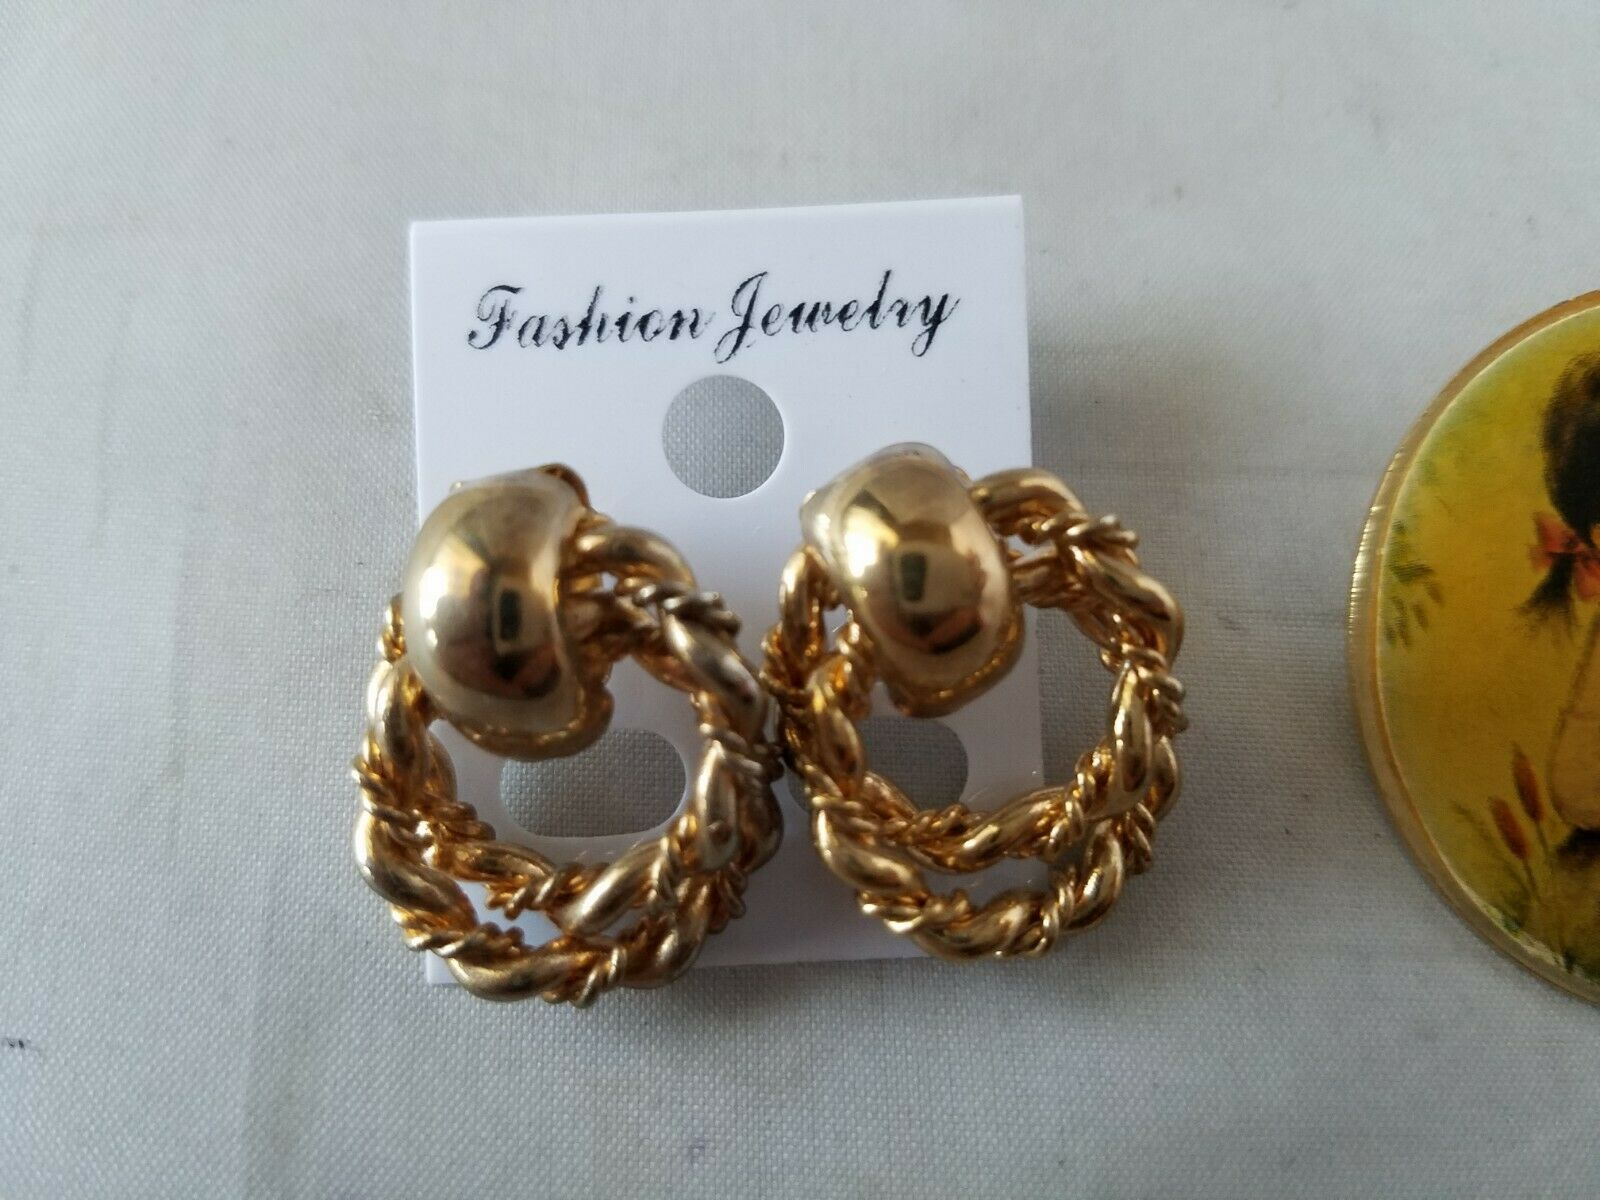 Vintage Fashion Jewelry Round Pin Brooch With Little Girl Matching Hoop Earrings